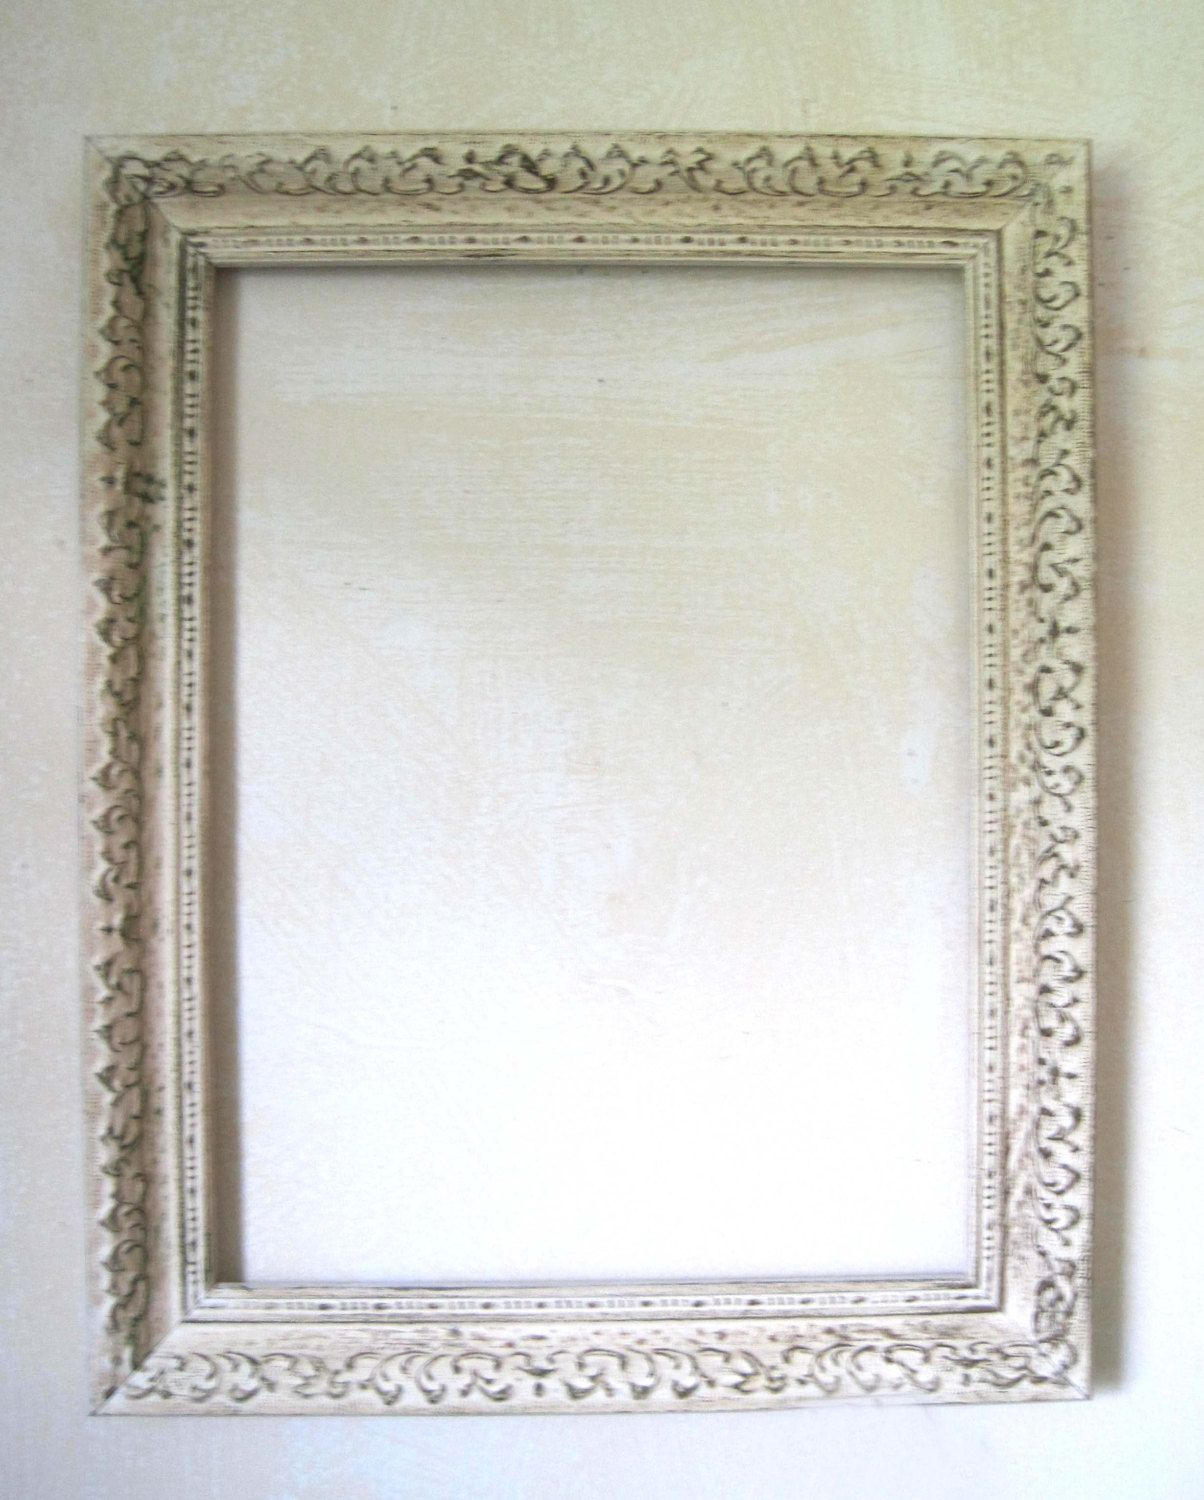 Vintage Frame Boho Distressed Frame Gesso Wood Whitewashed Gold Shabby Chic Wall Decor Lar Shabby Chic Picture Frames Frame Shabby Shabby Chic Photo Frames